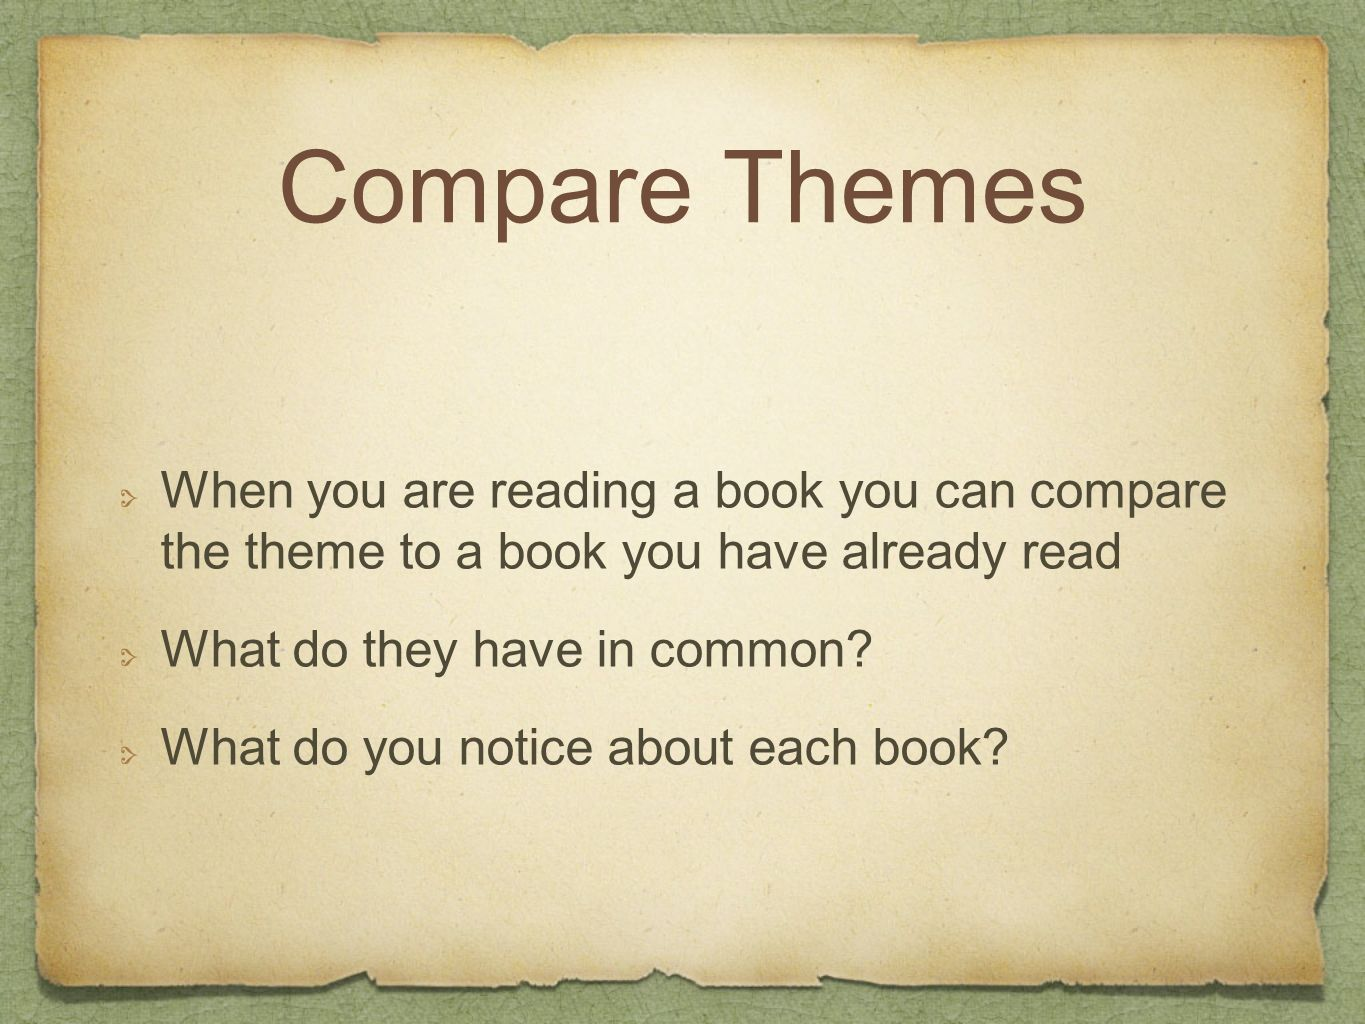 Compare Themes When you are reading a book you can compare the theme to a book you have already read.